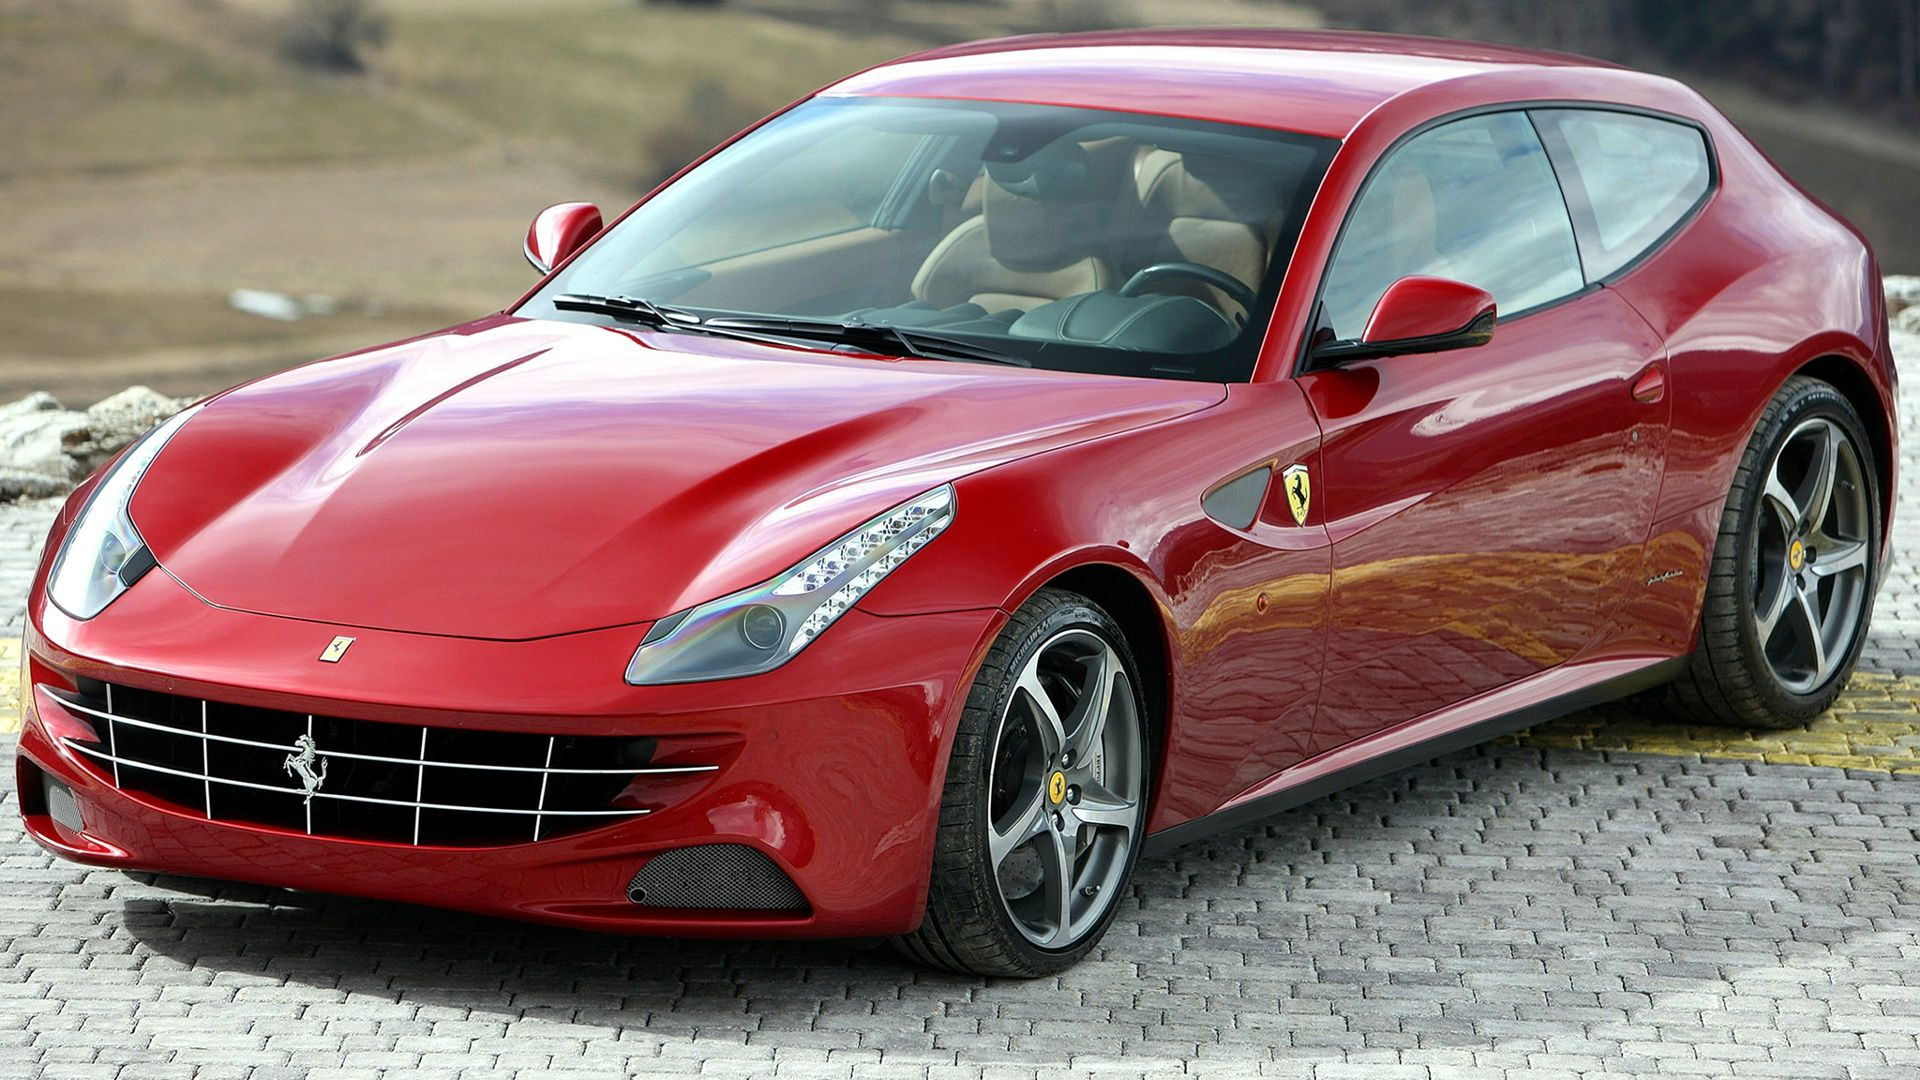 Ferrari Ff In Red On Hd Wallpapers From